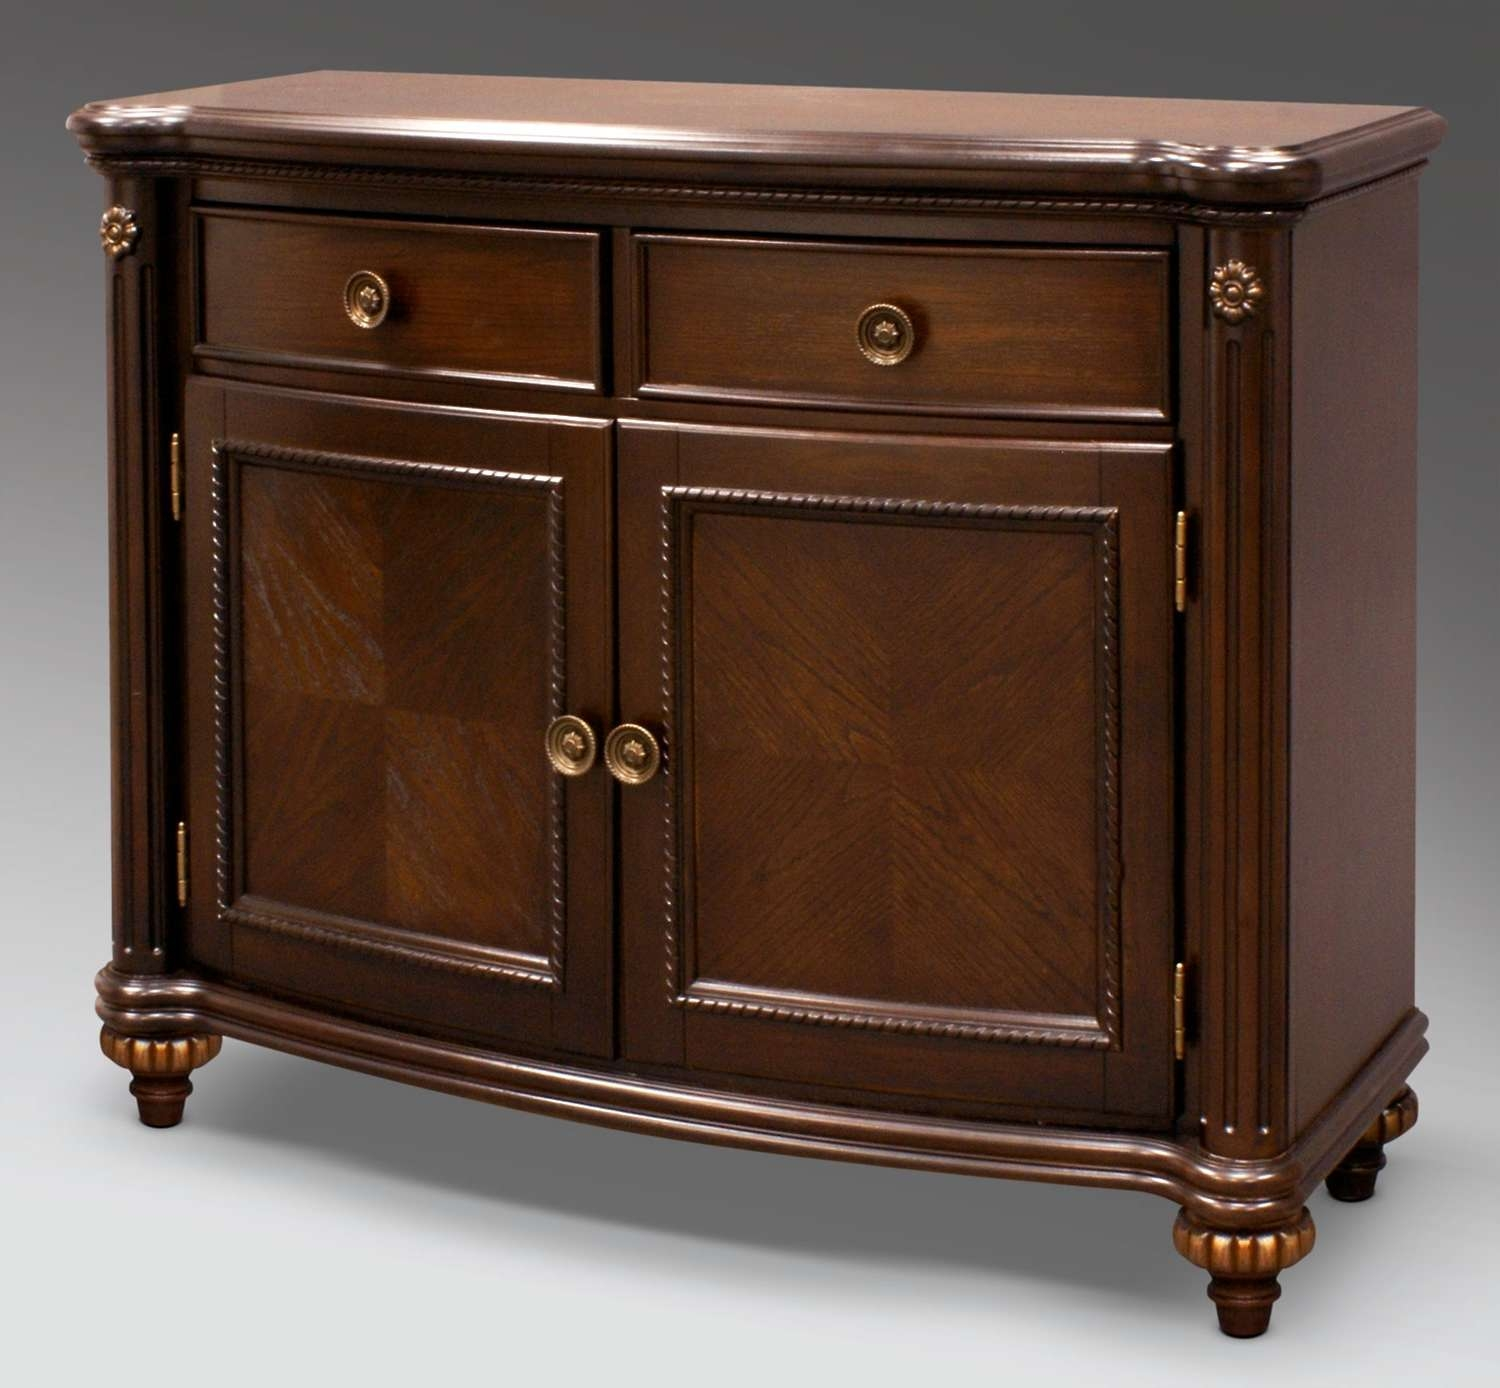 Glamorous Small Dining Room Sideboard Images – Best Image Engine With Regard To Small Dining Room Sideboards (View 3 of 20)